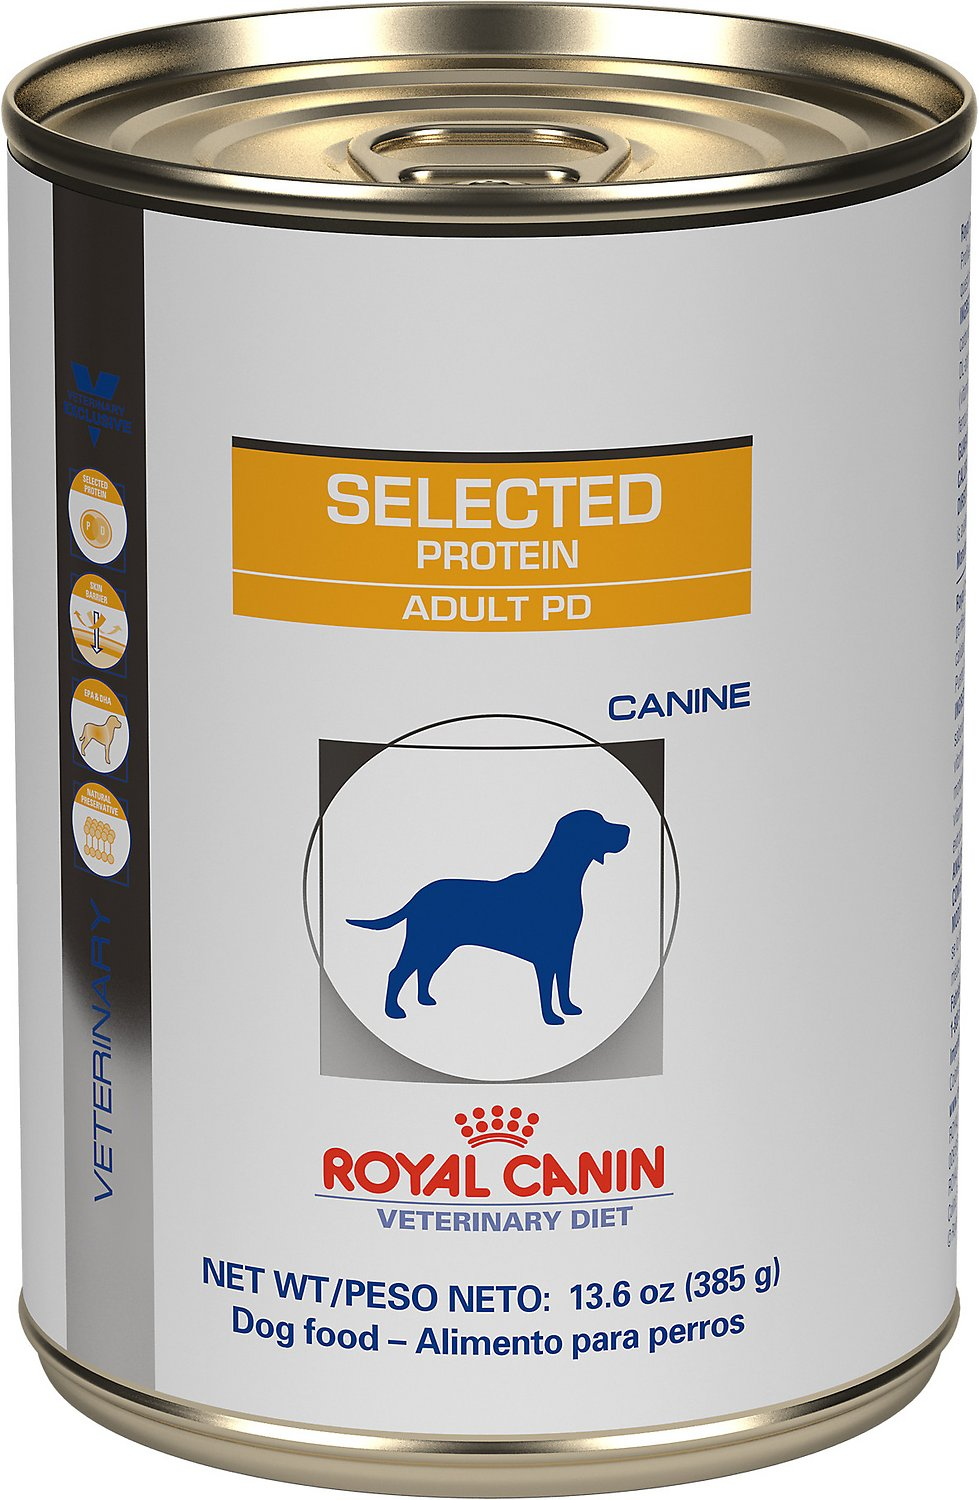 Prescription Dog Food >> Royal Canin Veterinary Diet Selected Protein Adult PD ...